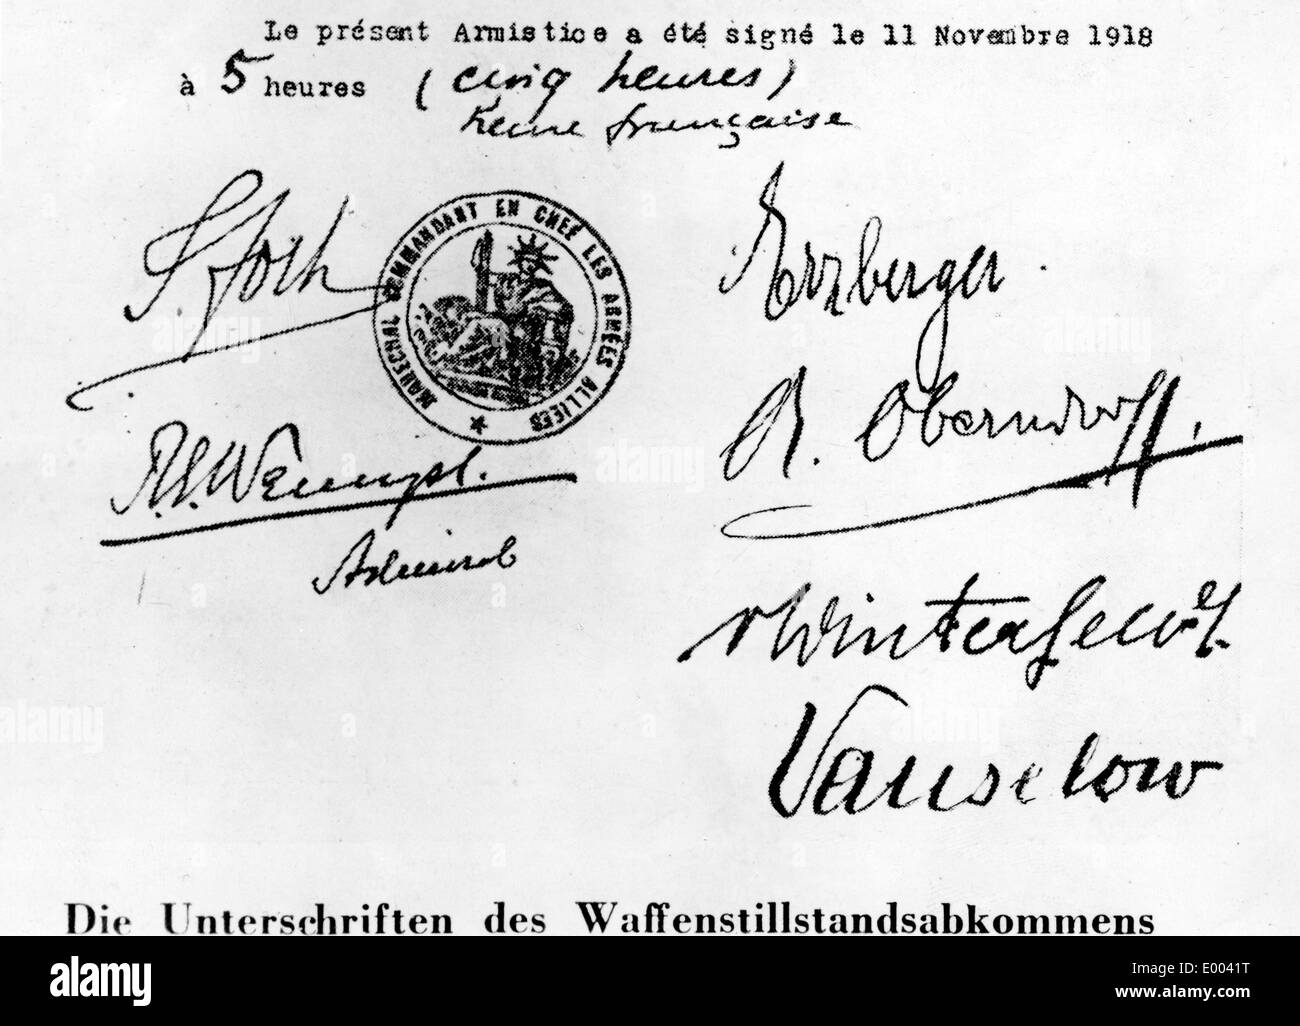 Signed Armistice Agreement from Compiegne, 1918 - Stock Image